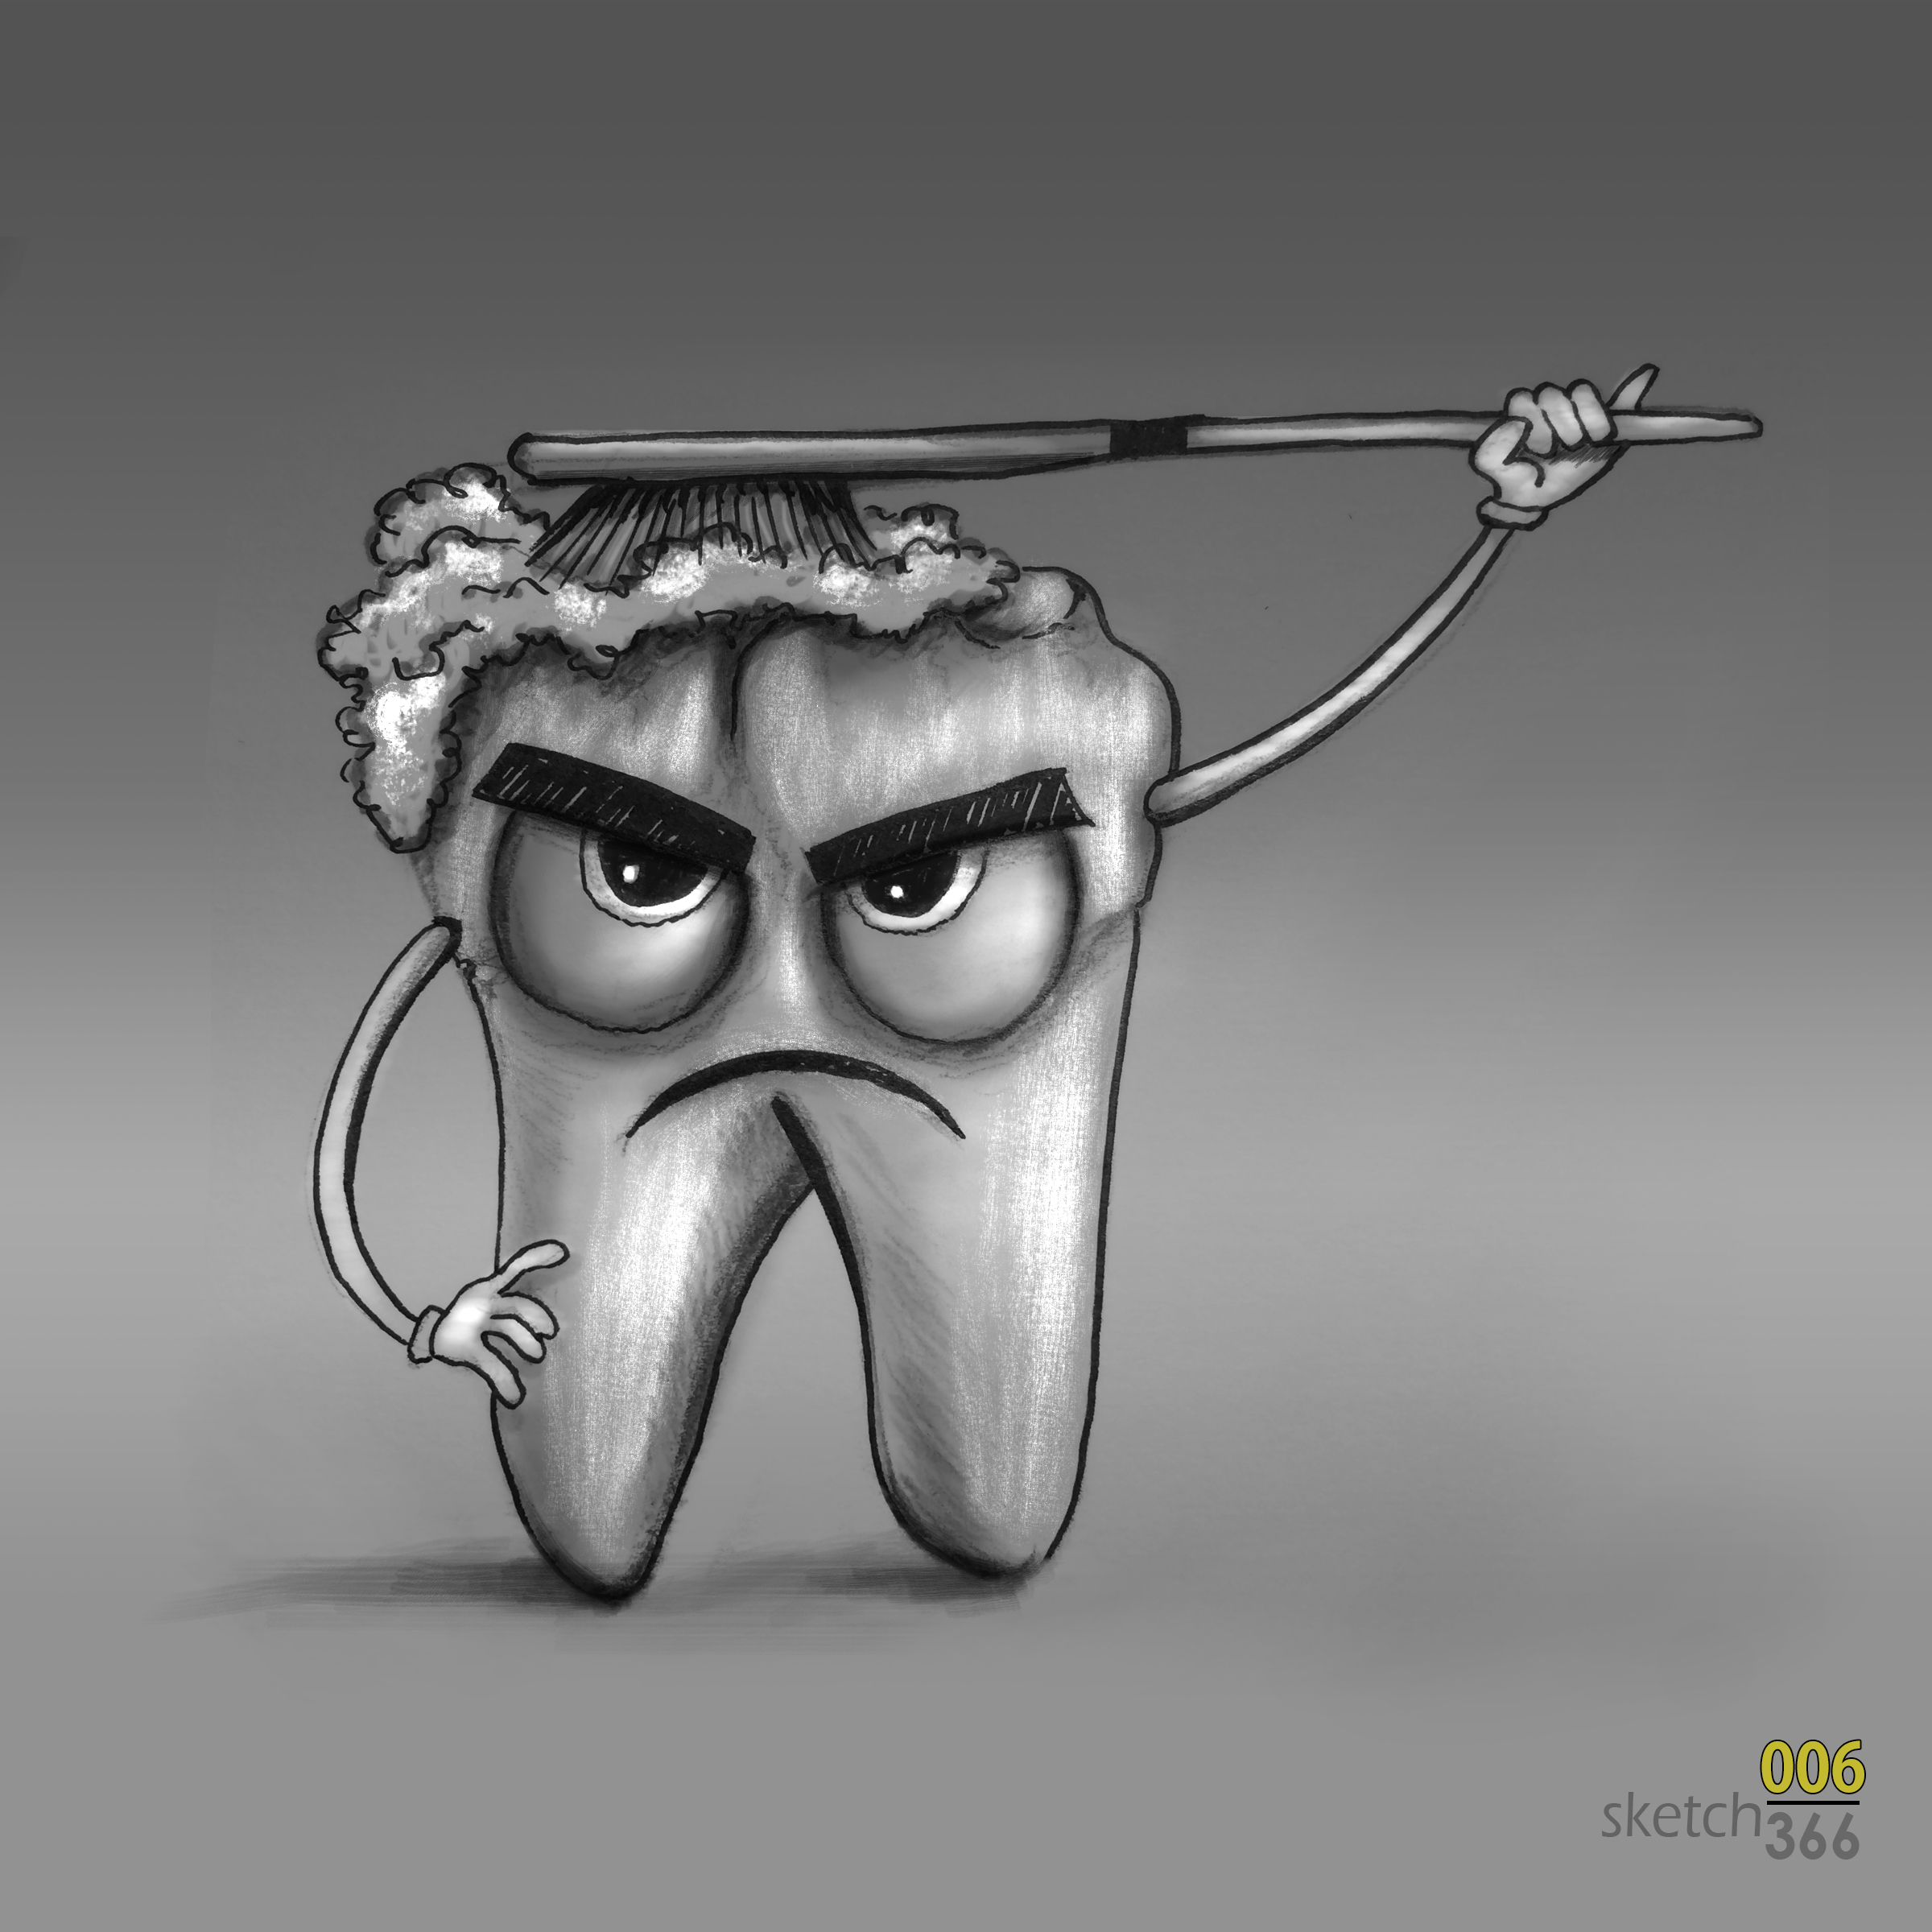 Grouchy toothman - pencil/marker/photoshop